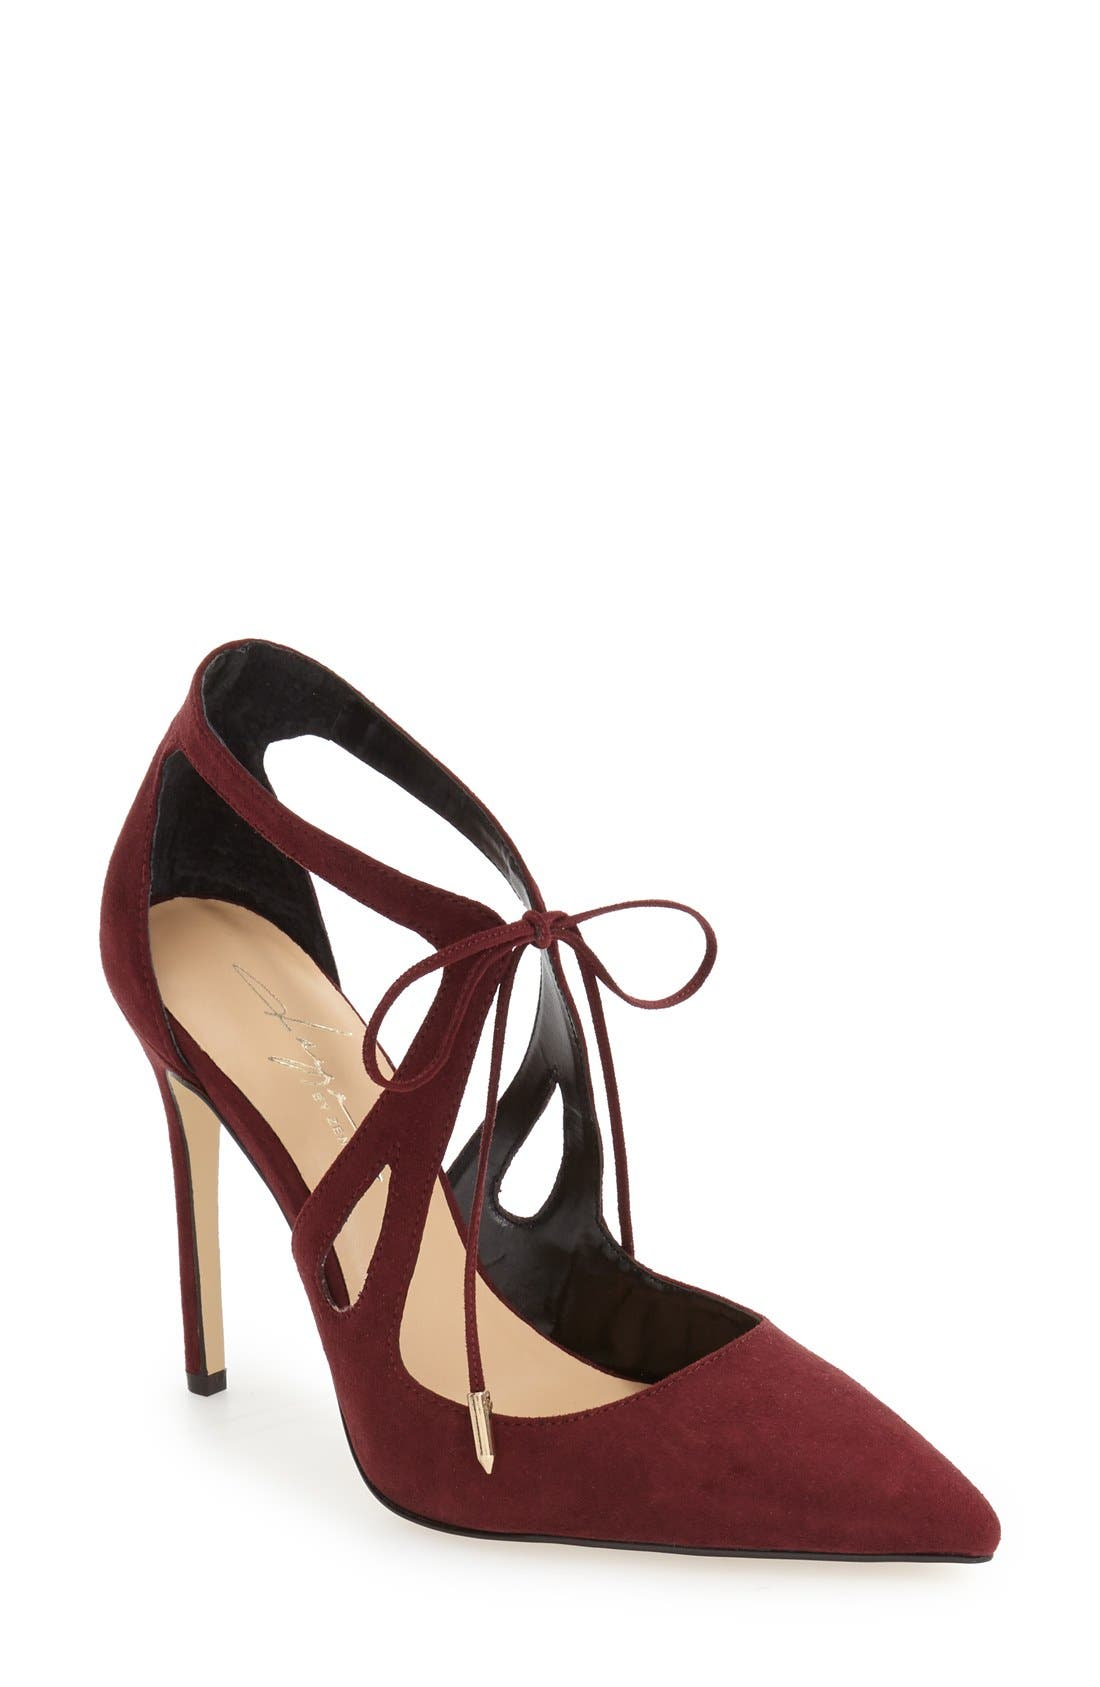 Alternate Image 1 Selected - Daya by Zendaya 'Aaron' Pointy Toe Pump (Women)